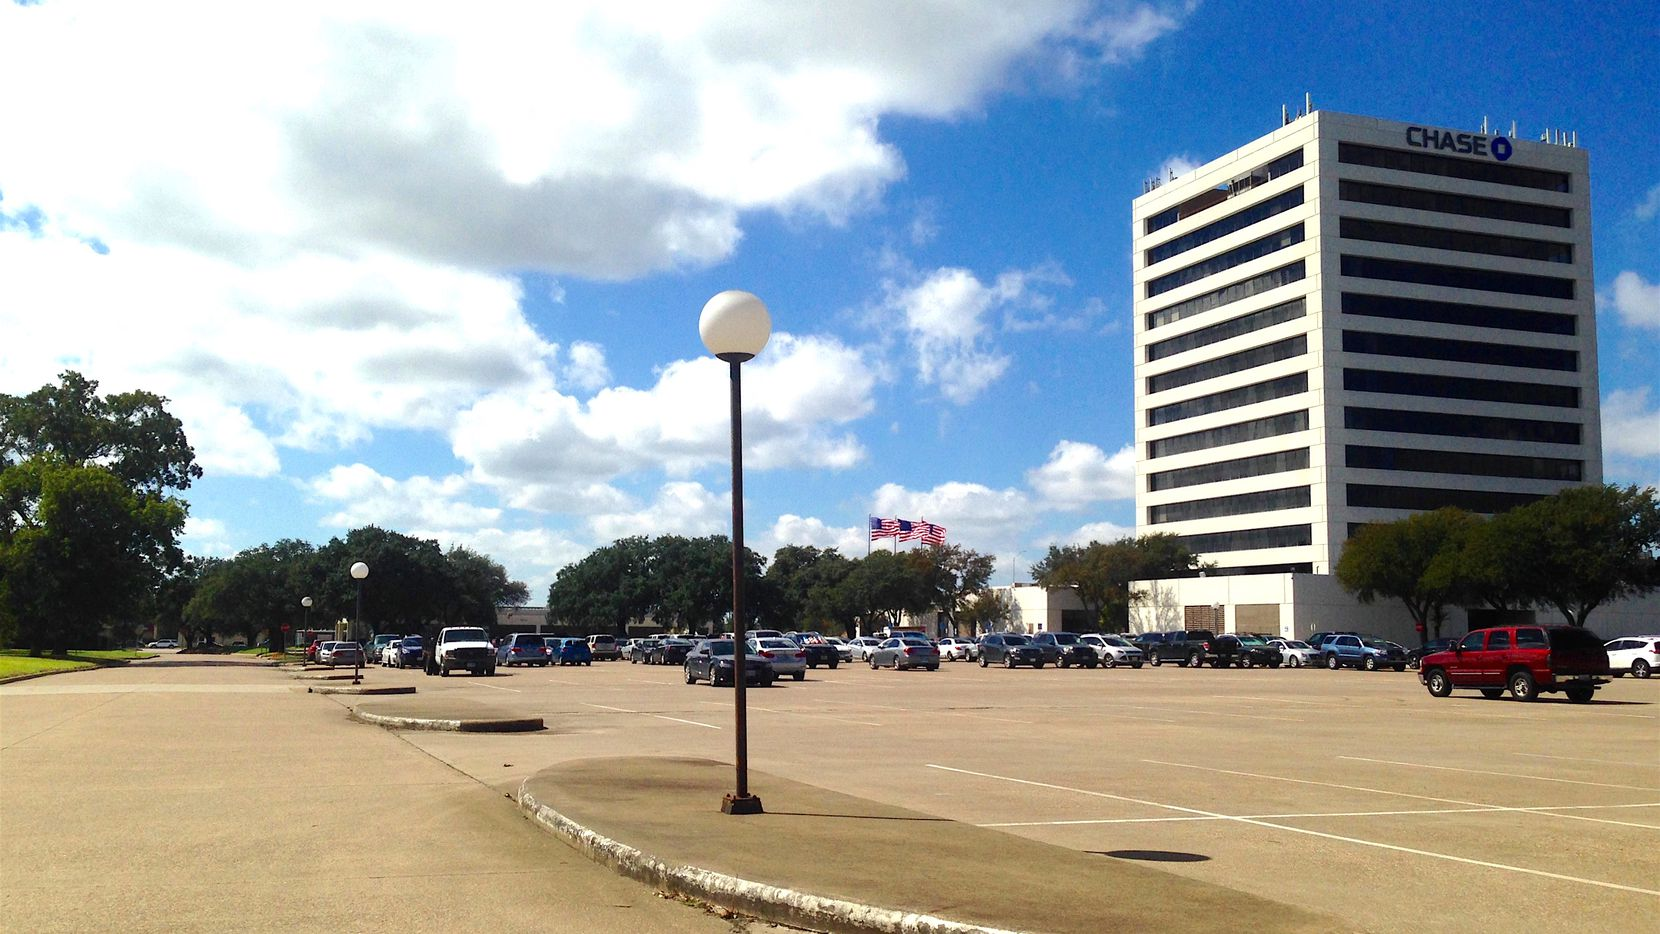 The planned Town Central development would surround the Chase Bank building on Main Street in Richardson.